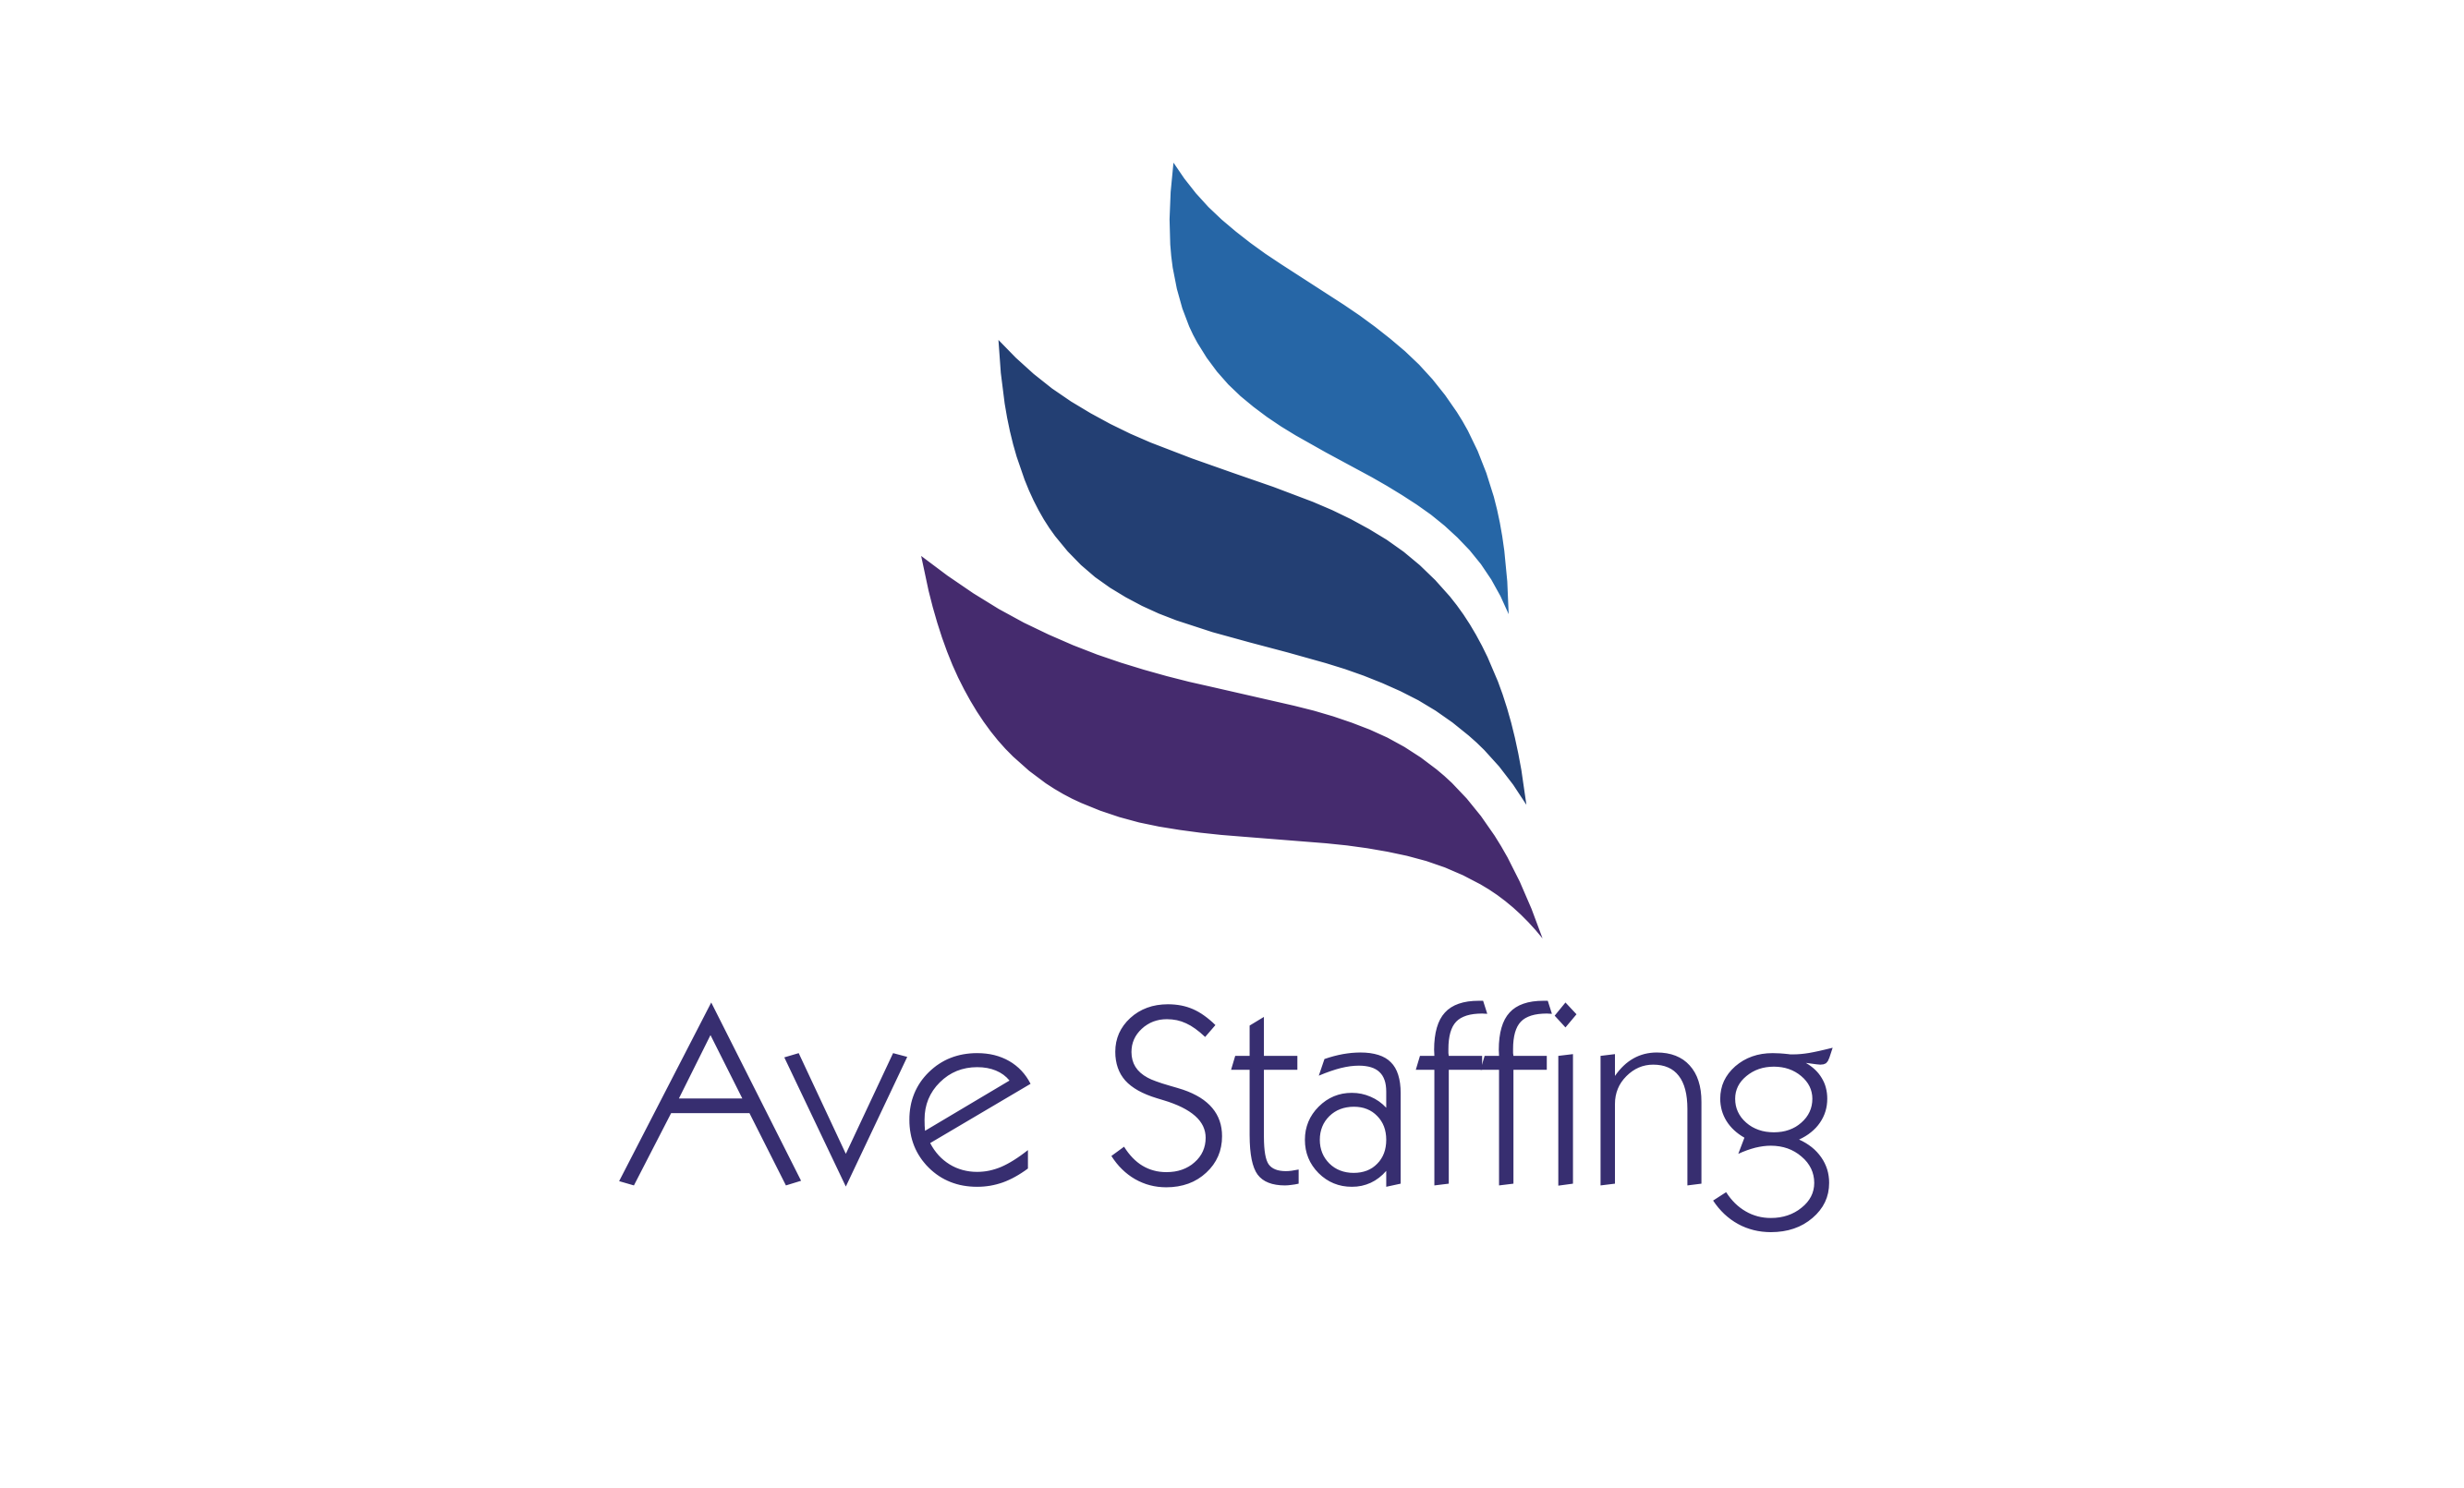 Ave Staffing